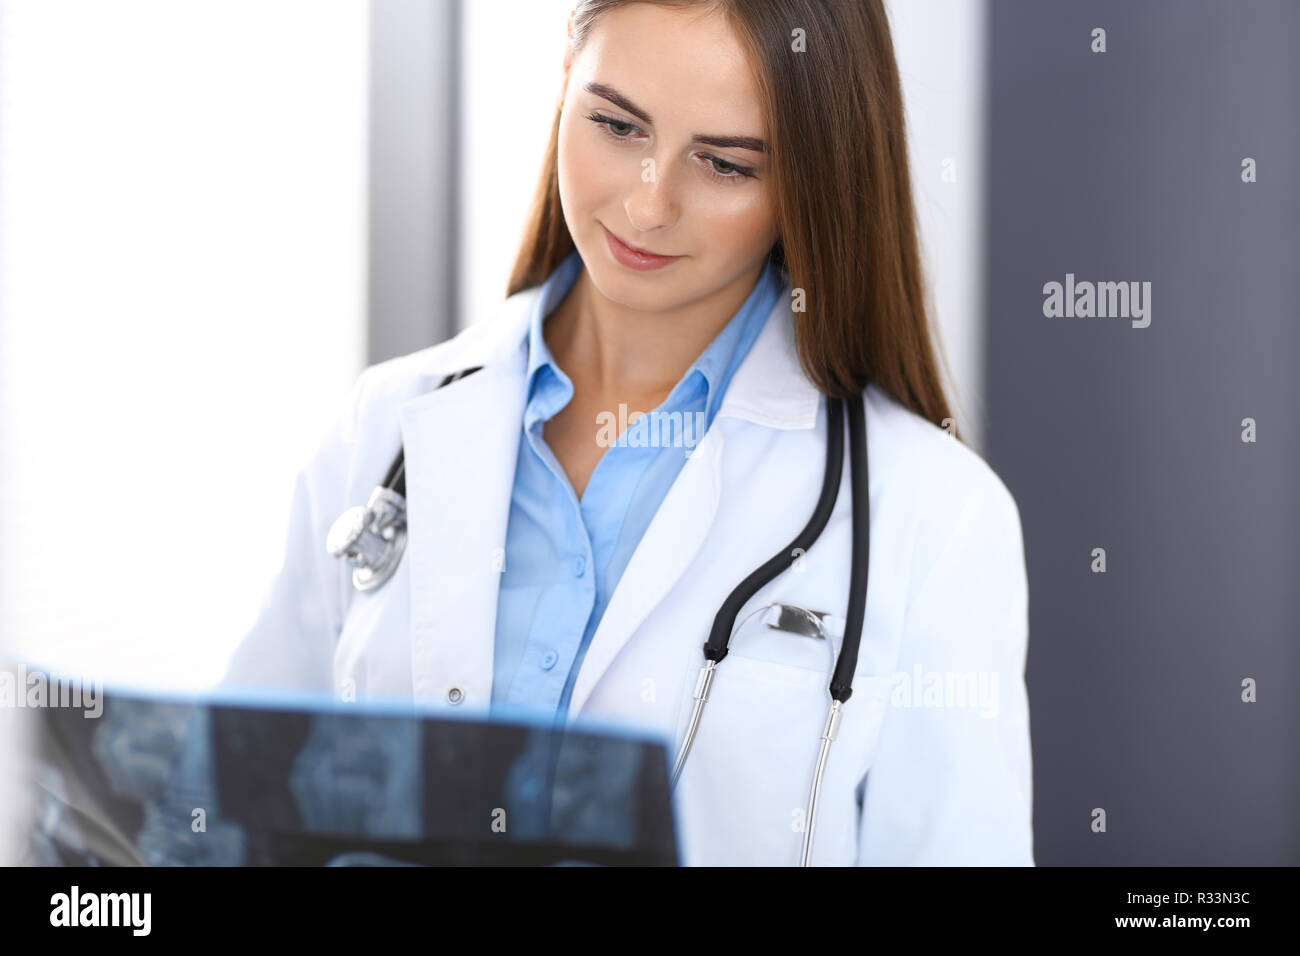 Doctor woman examining x-ray picture while standing near window in hospital. Surgeon or orthopedist at work. Medicine and healthcare concept - Stock Image